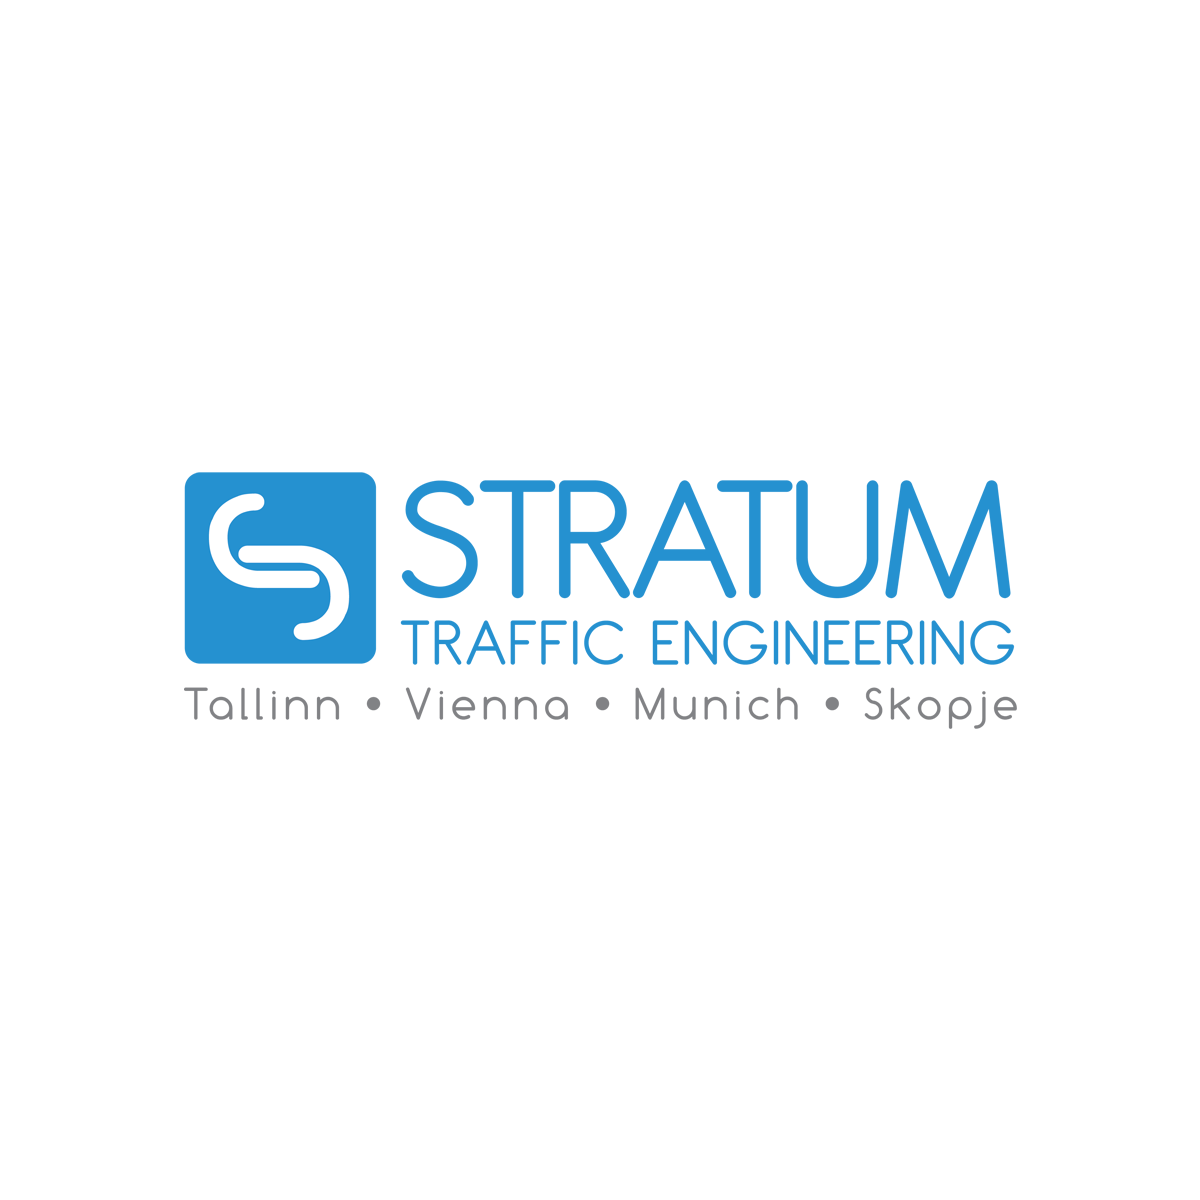 STRATUM Launches Its New Website